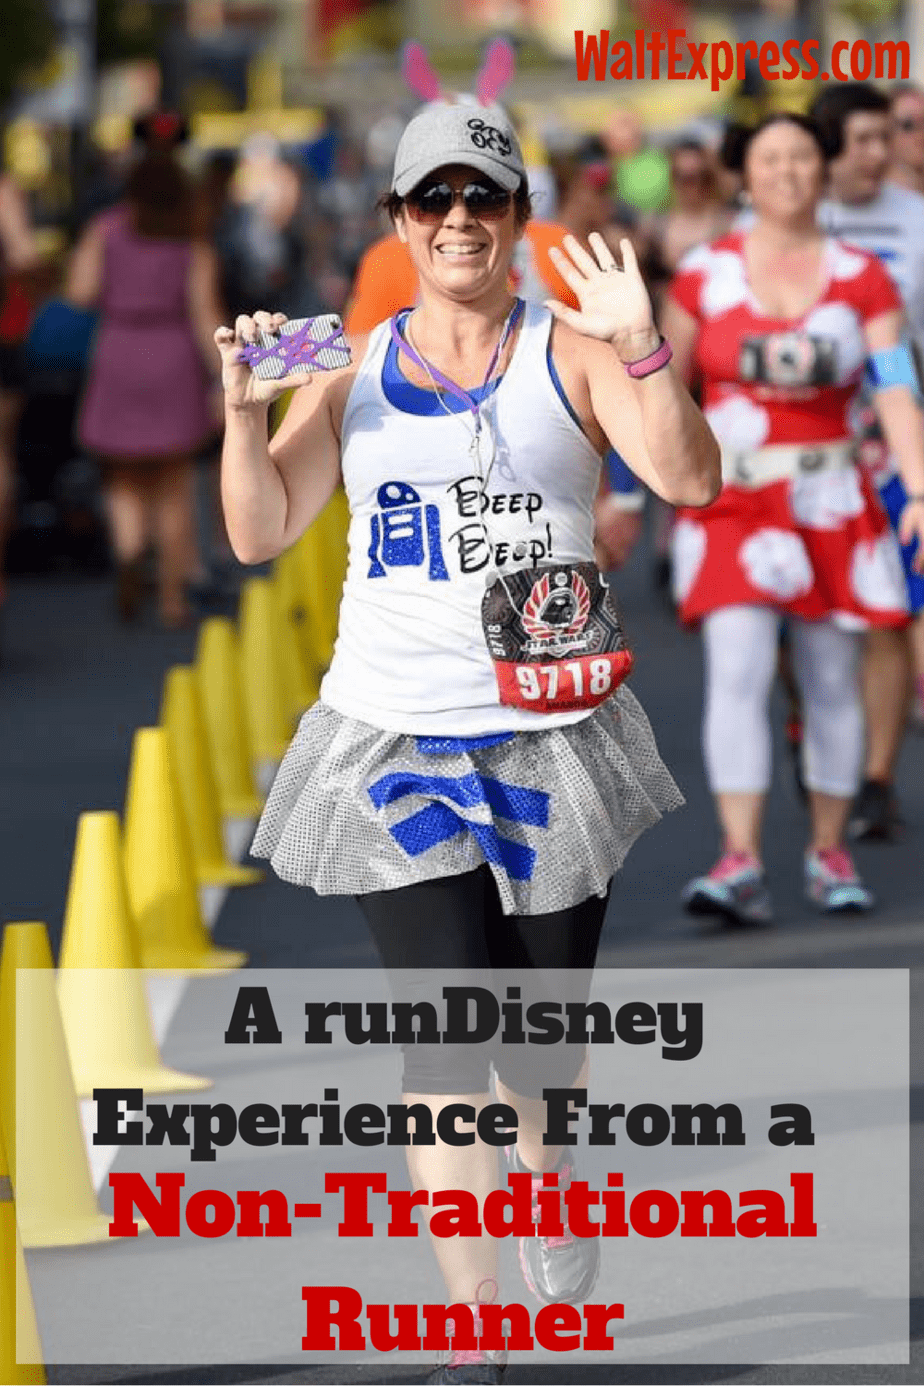 A runDisney Experience From a Non-Traditional Runner